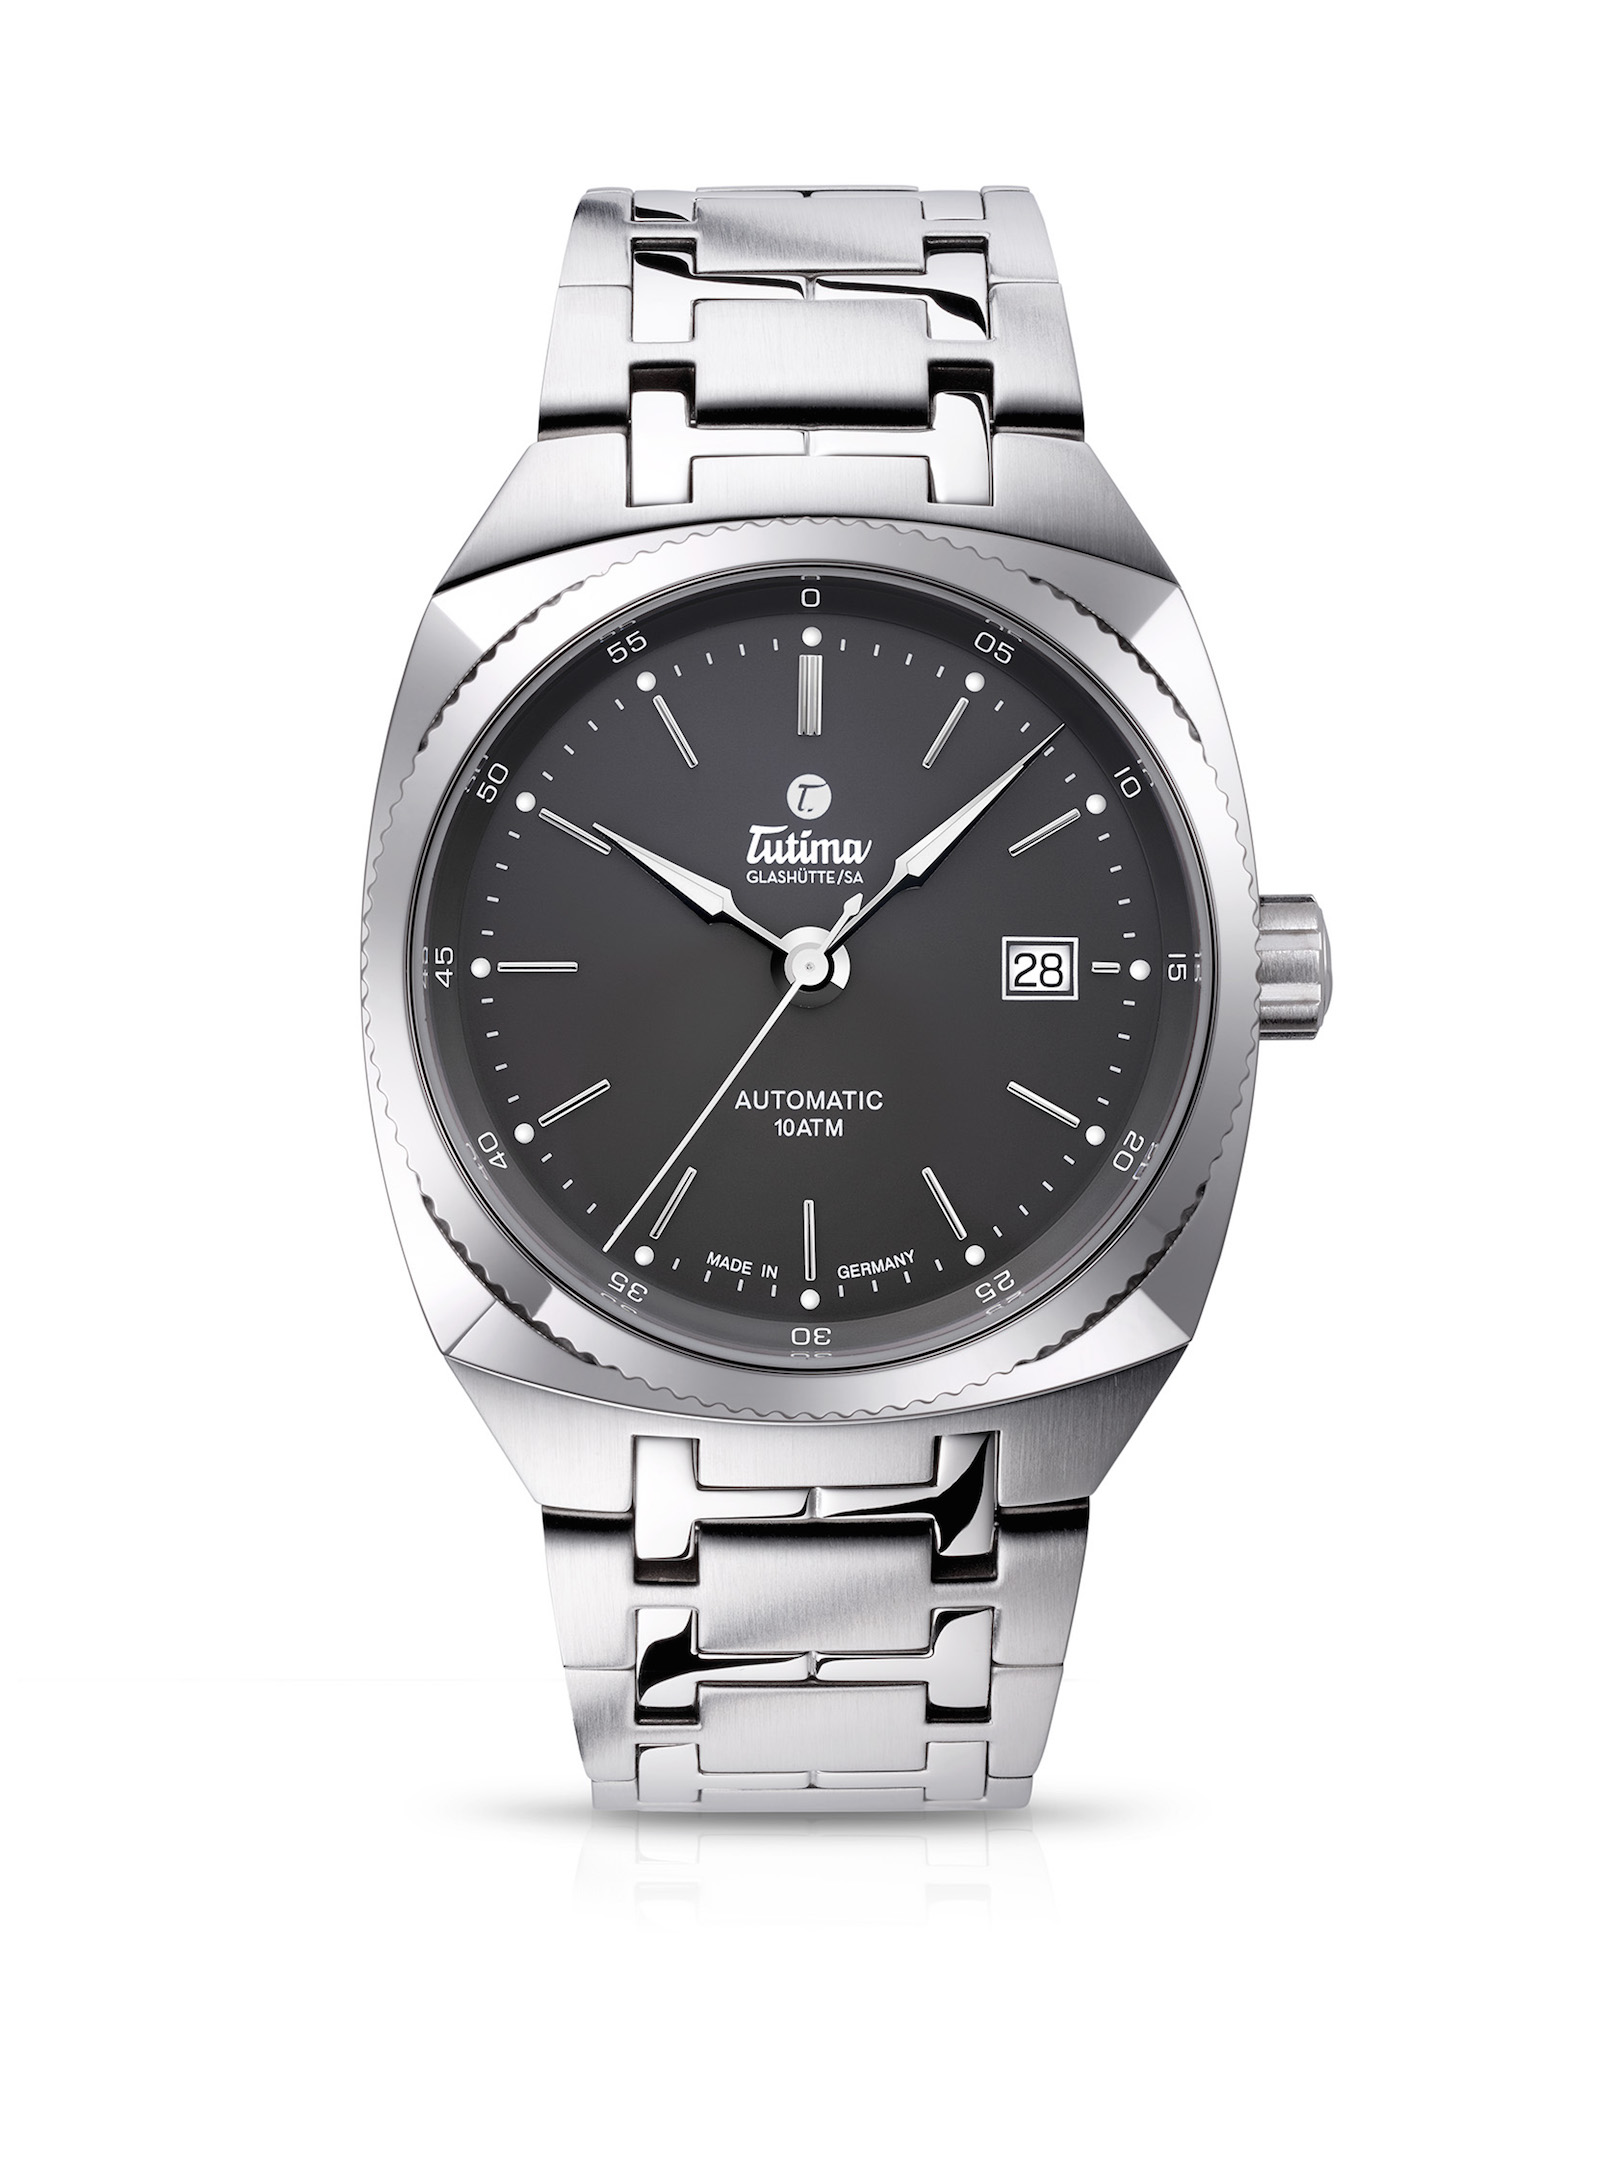 The Tutima Saxon One M in 40mm with slate gray dial is offered with an integrated strap or a steel bracelet.